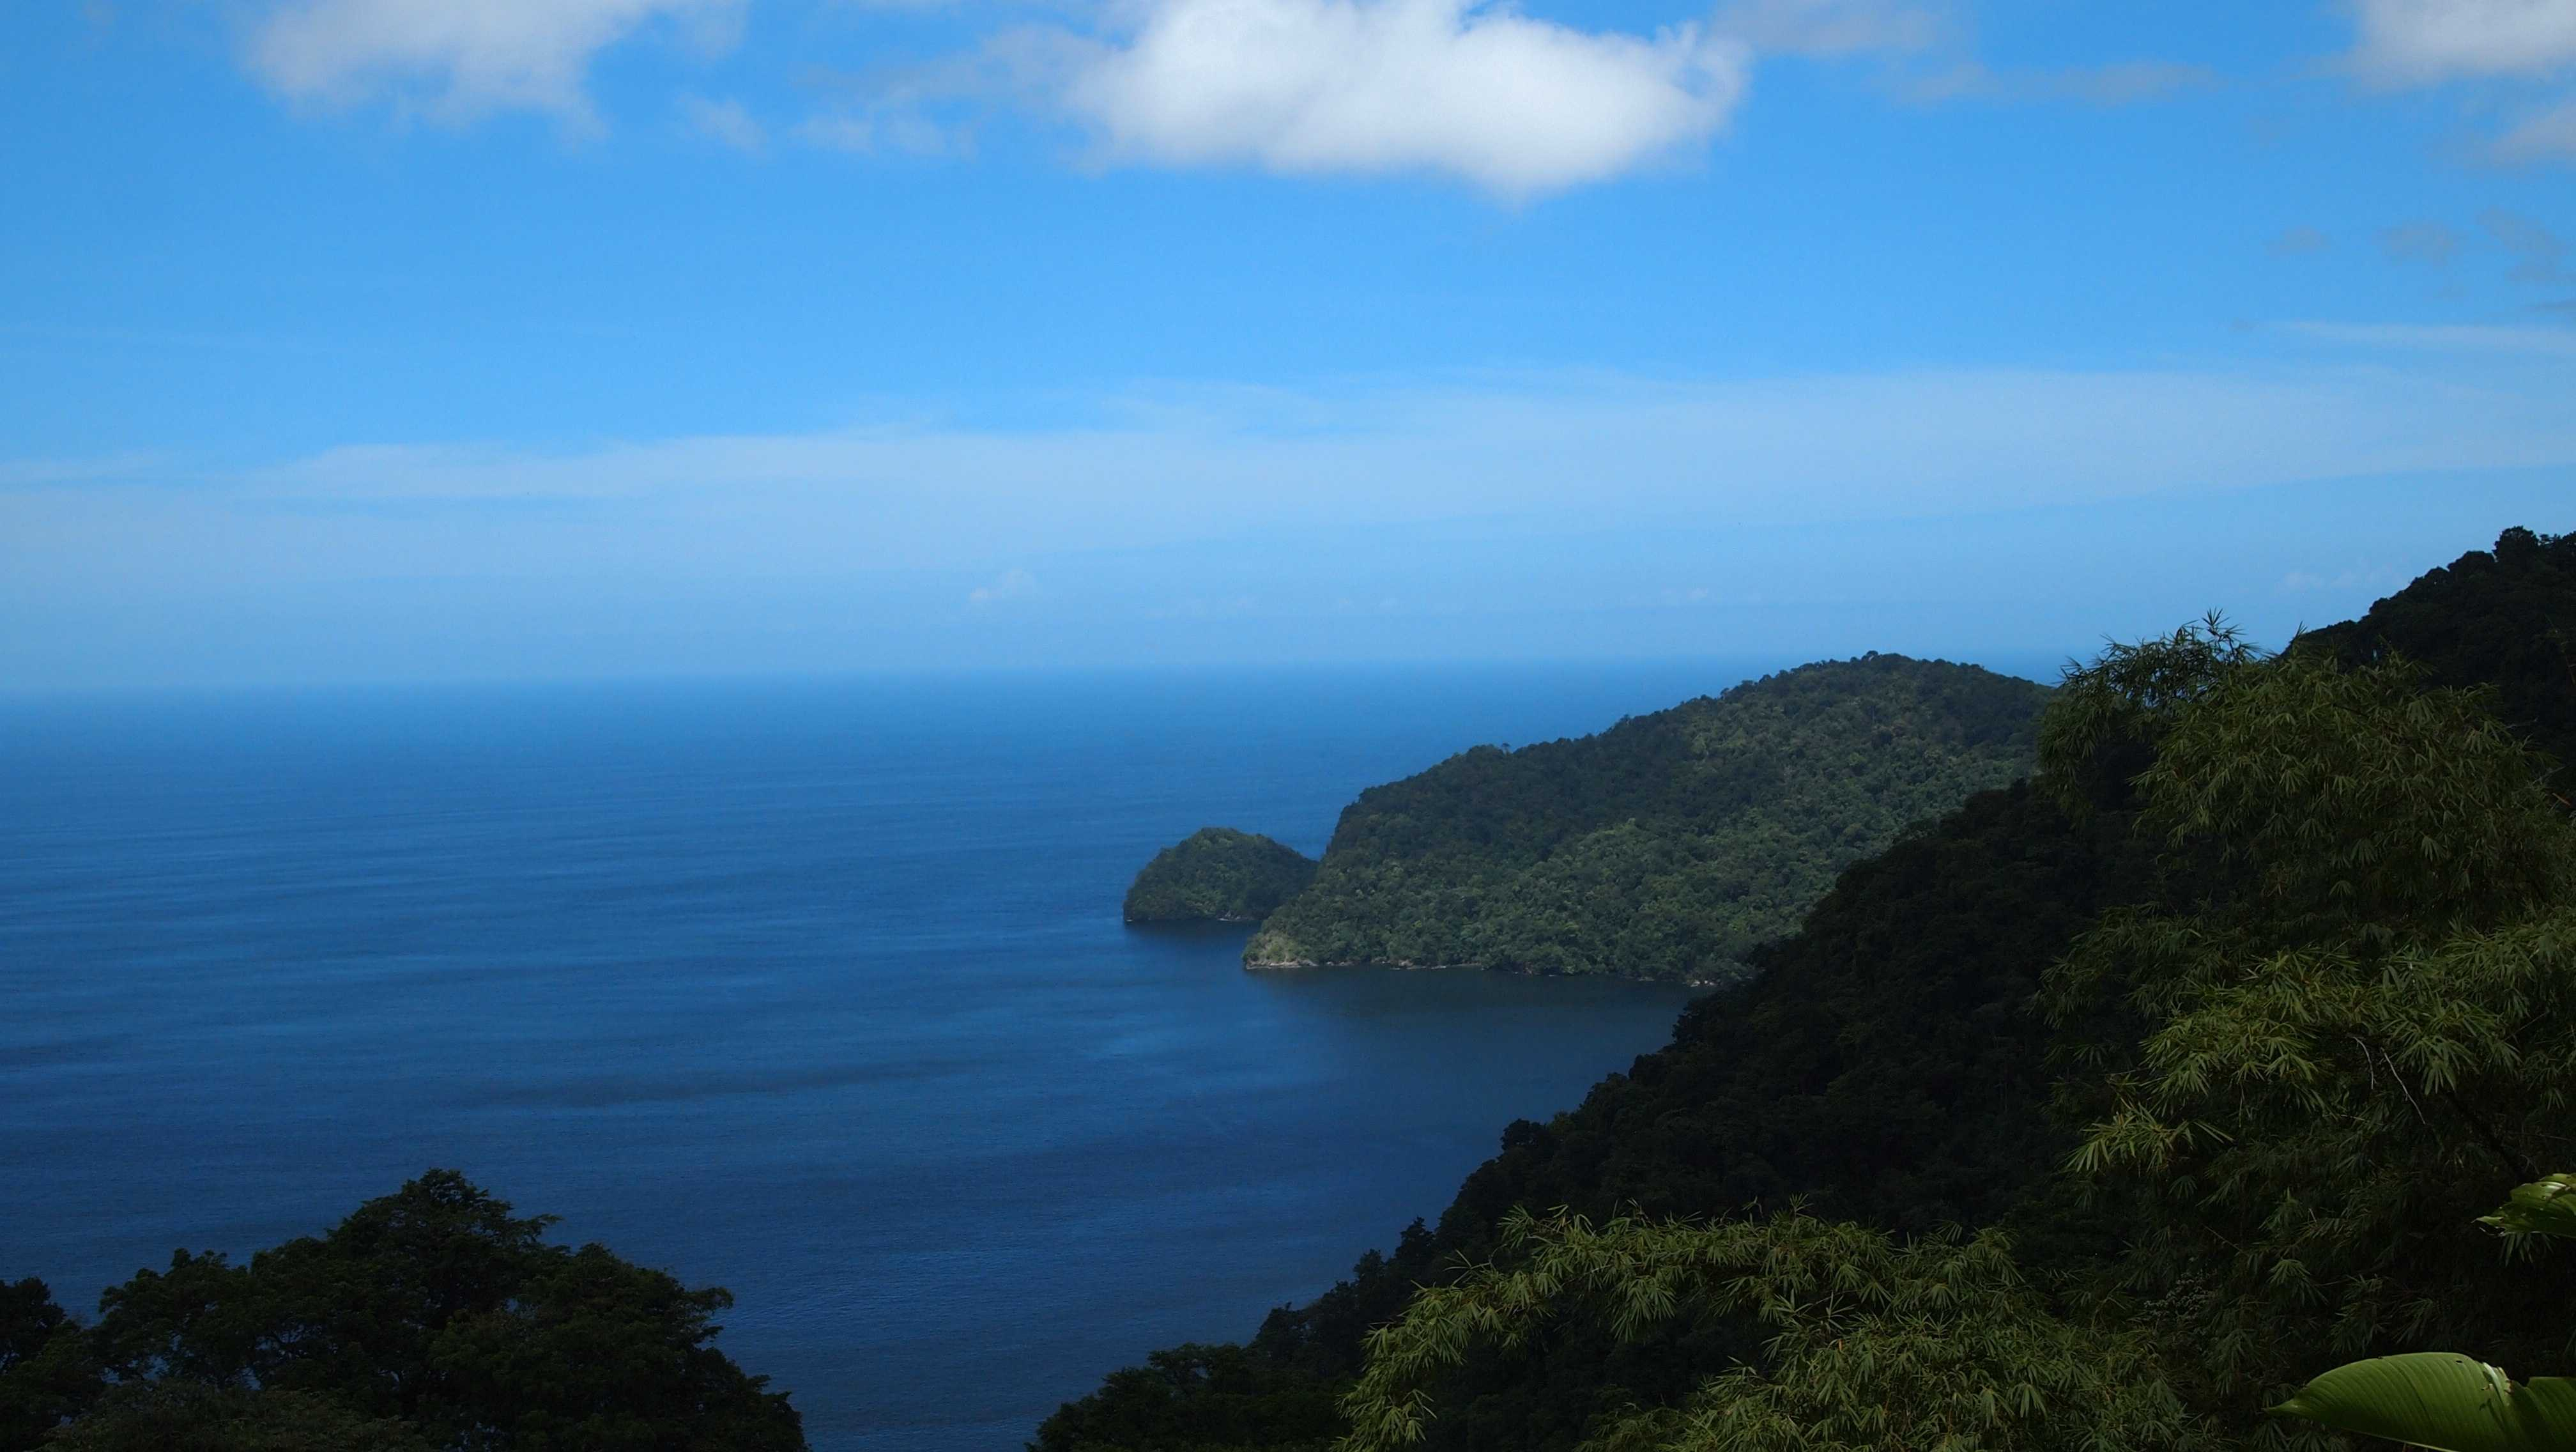 original_north-coast-trinidad-1773469